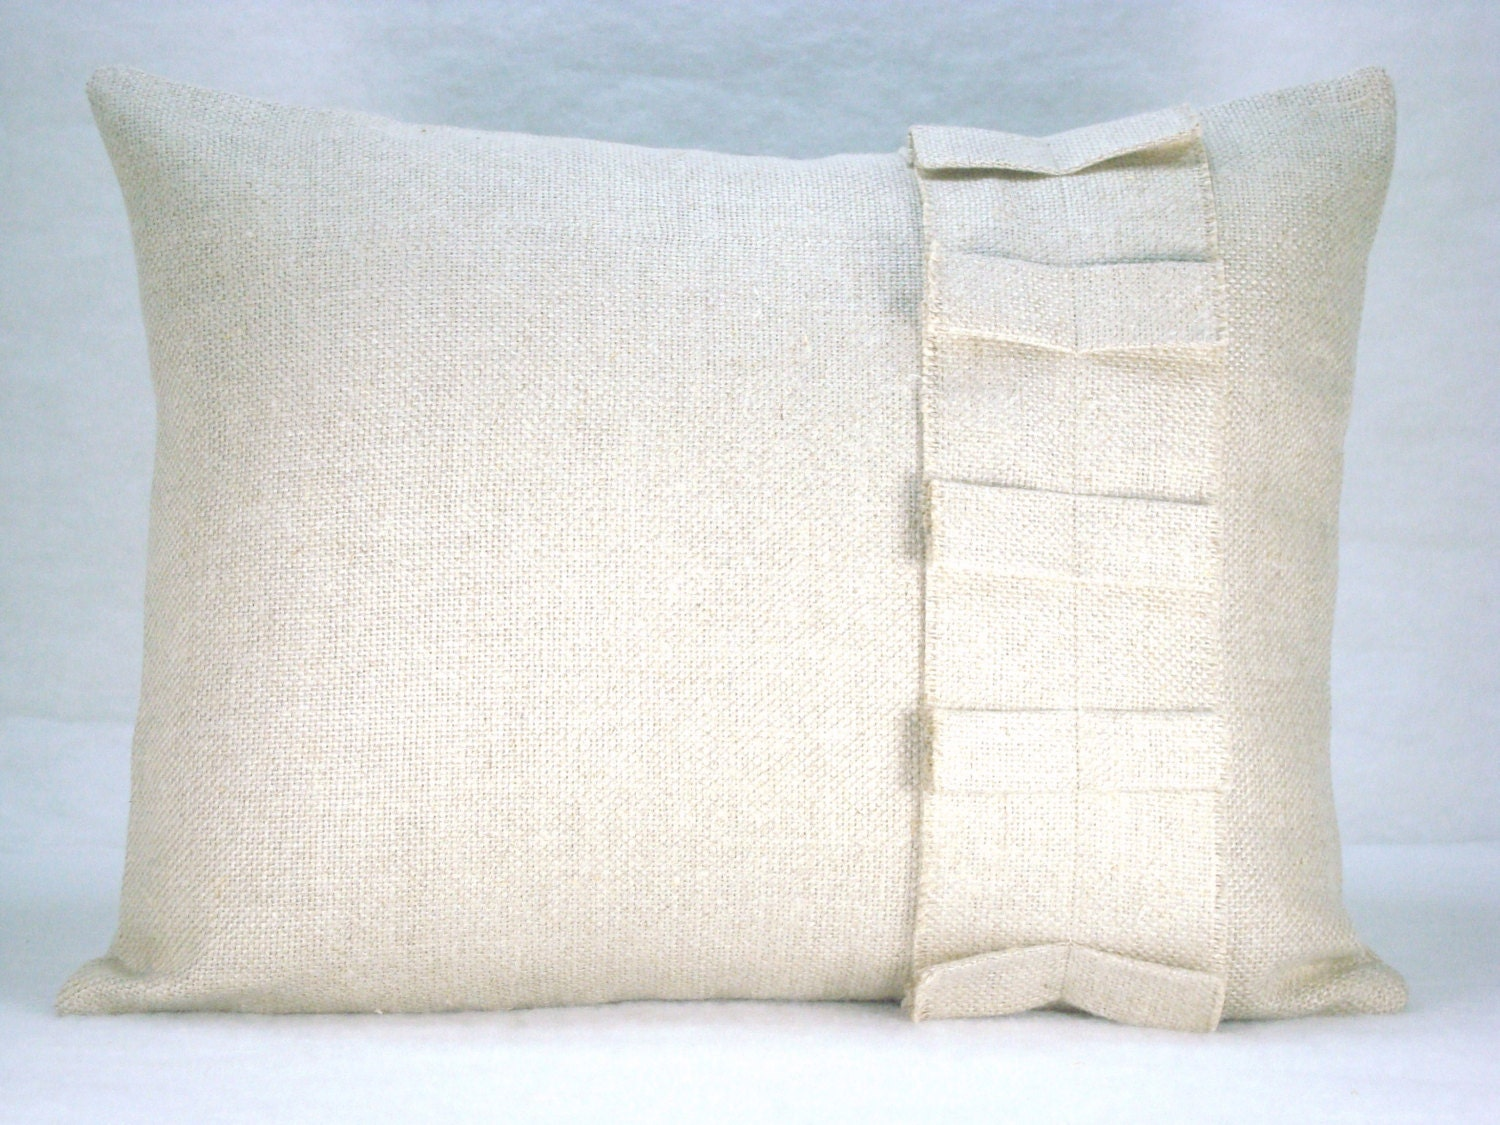 Decorative Linen Pillows : Linen Lumbar Pillow Decorative Accent Lumbar Pillow Ruffled